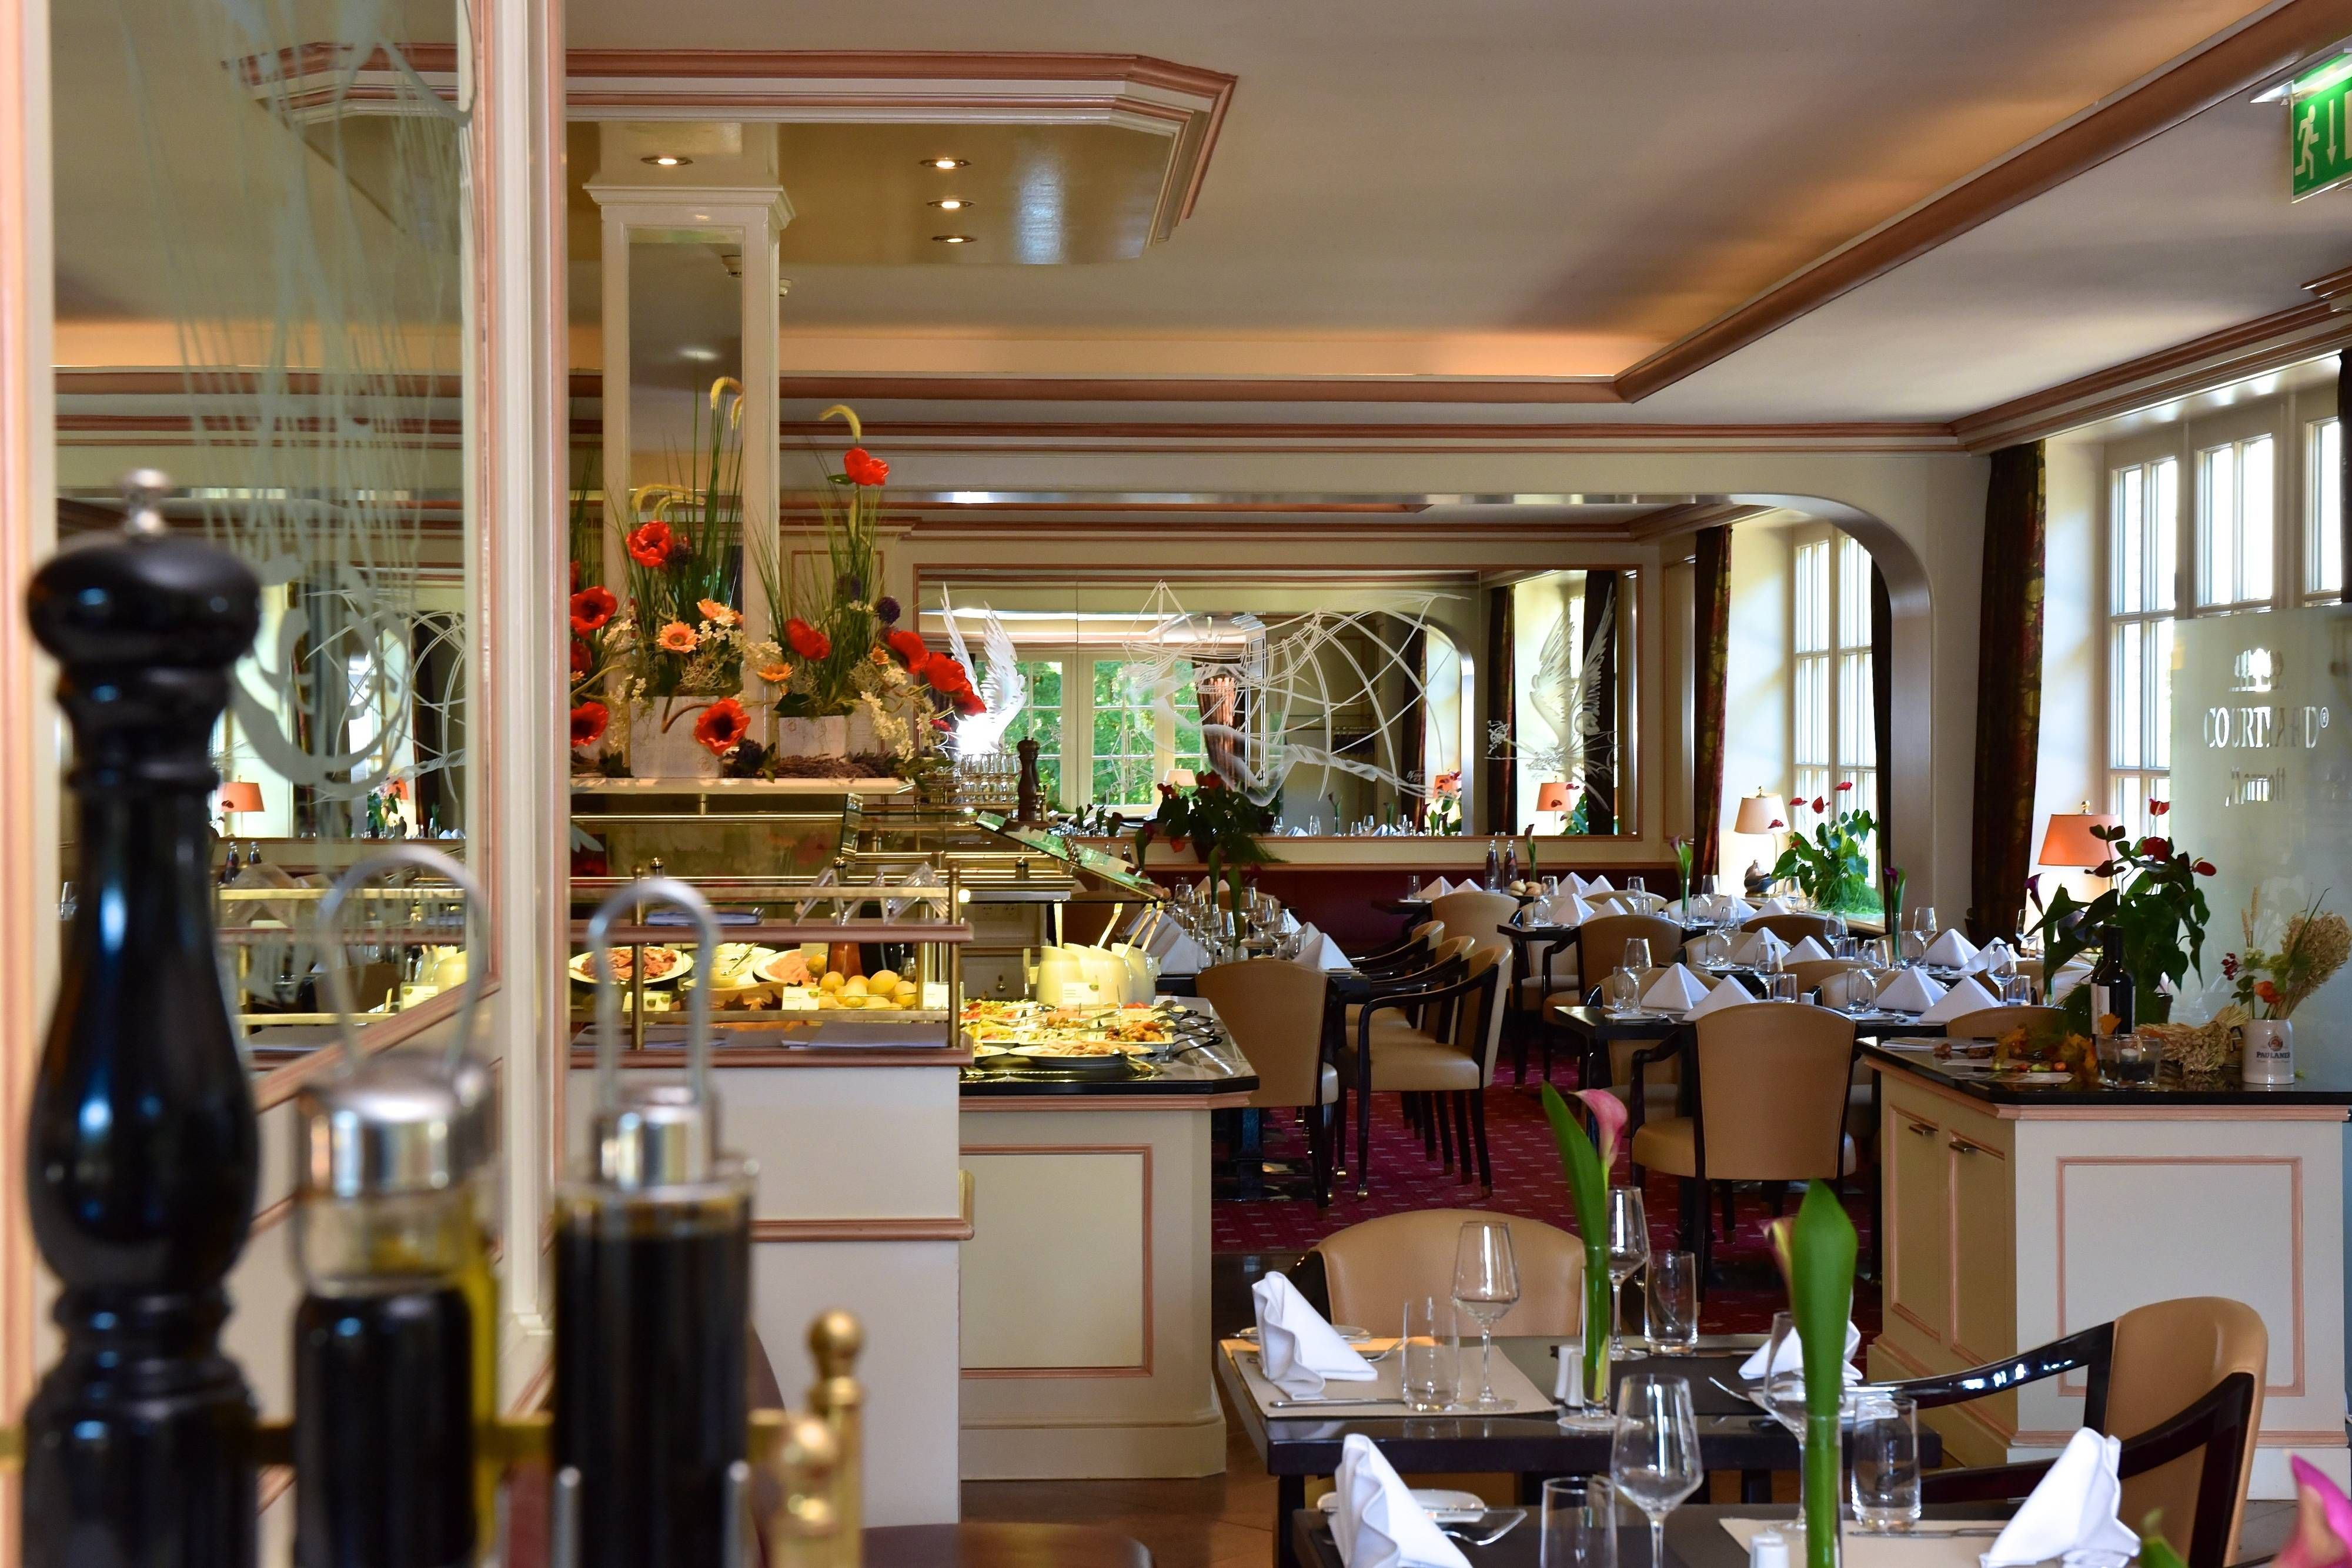 Courtyard Hamburg Airport Restaurant Concorde #Enjoy, #Traveling, #Rooms,